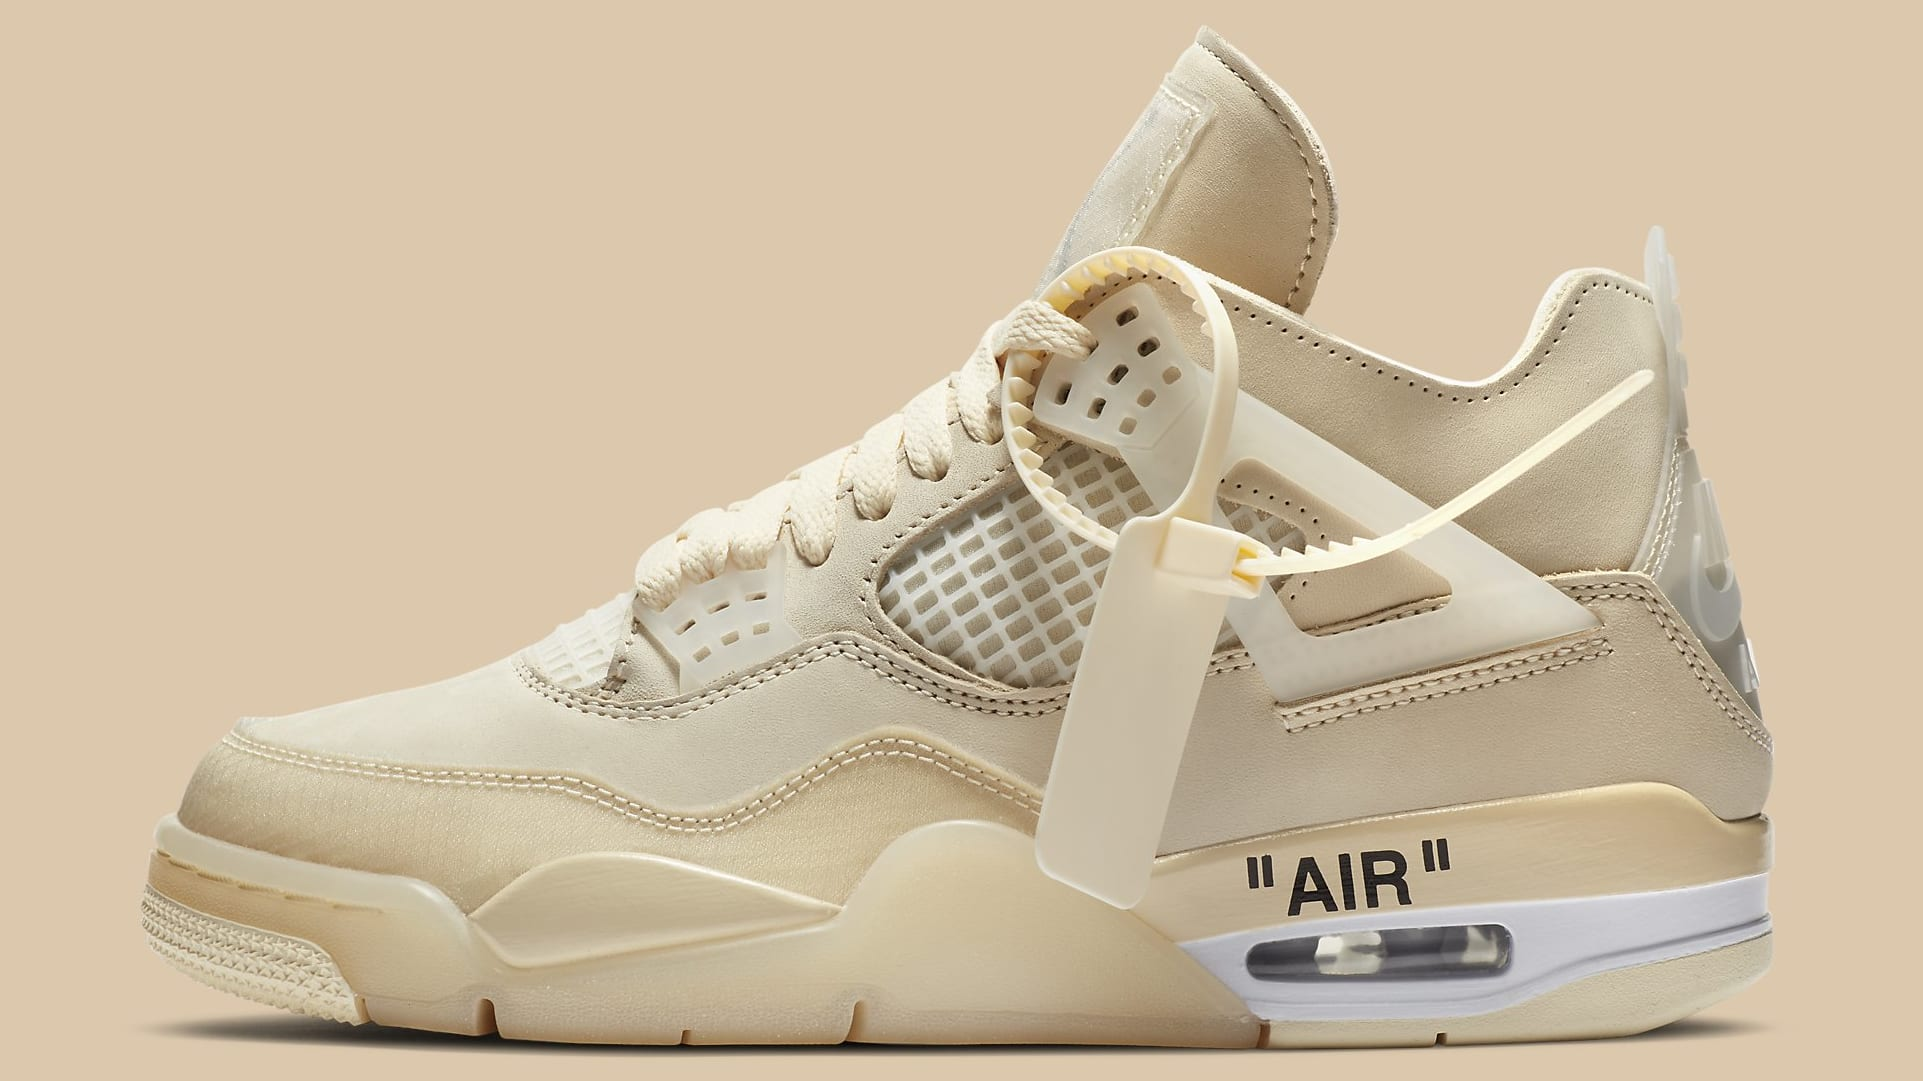 Off-White x Air Jordan 4 Sail Release Date CV9388-100 Profile